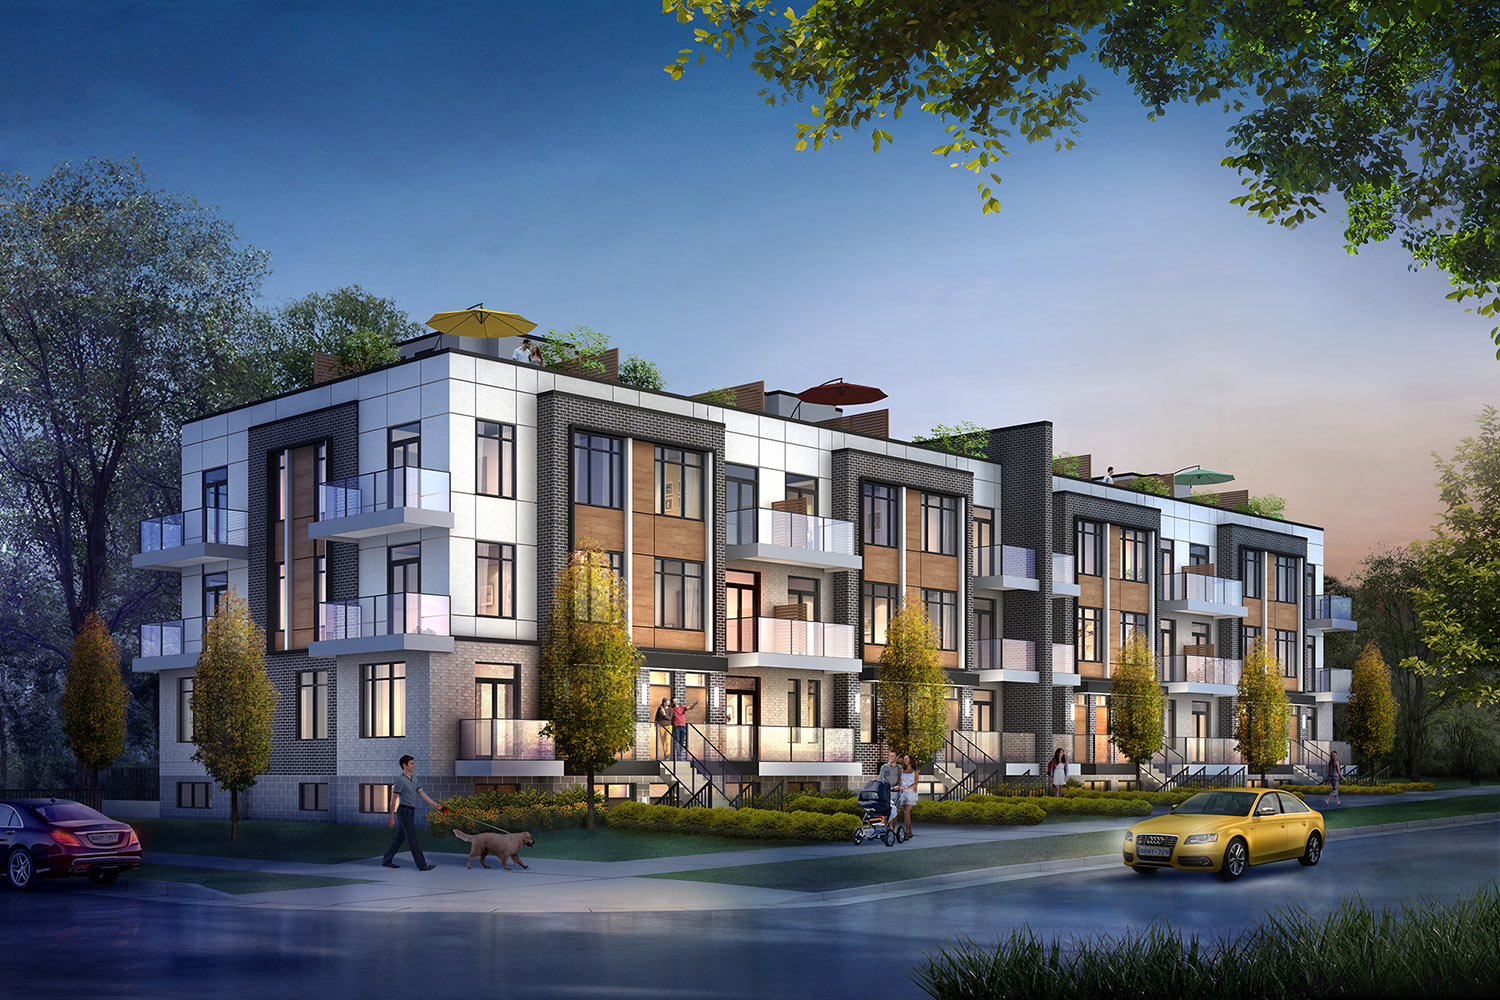 Condos & Town Homes at Birchmount and Lawrence!